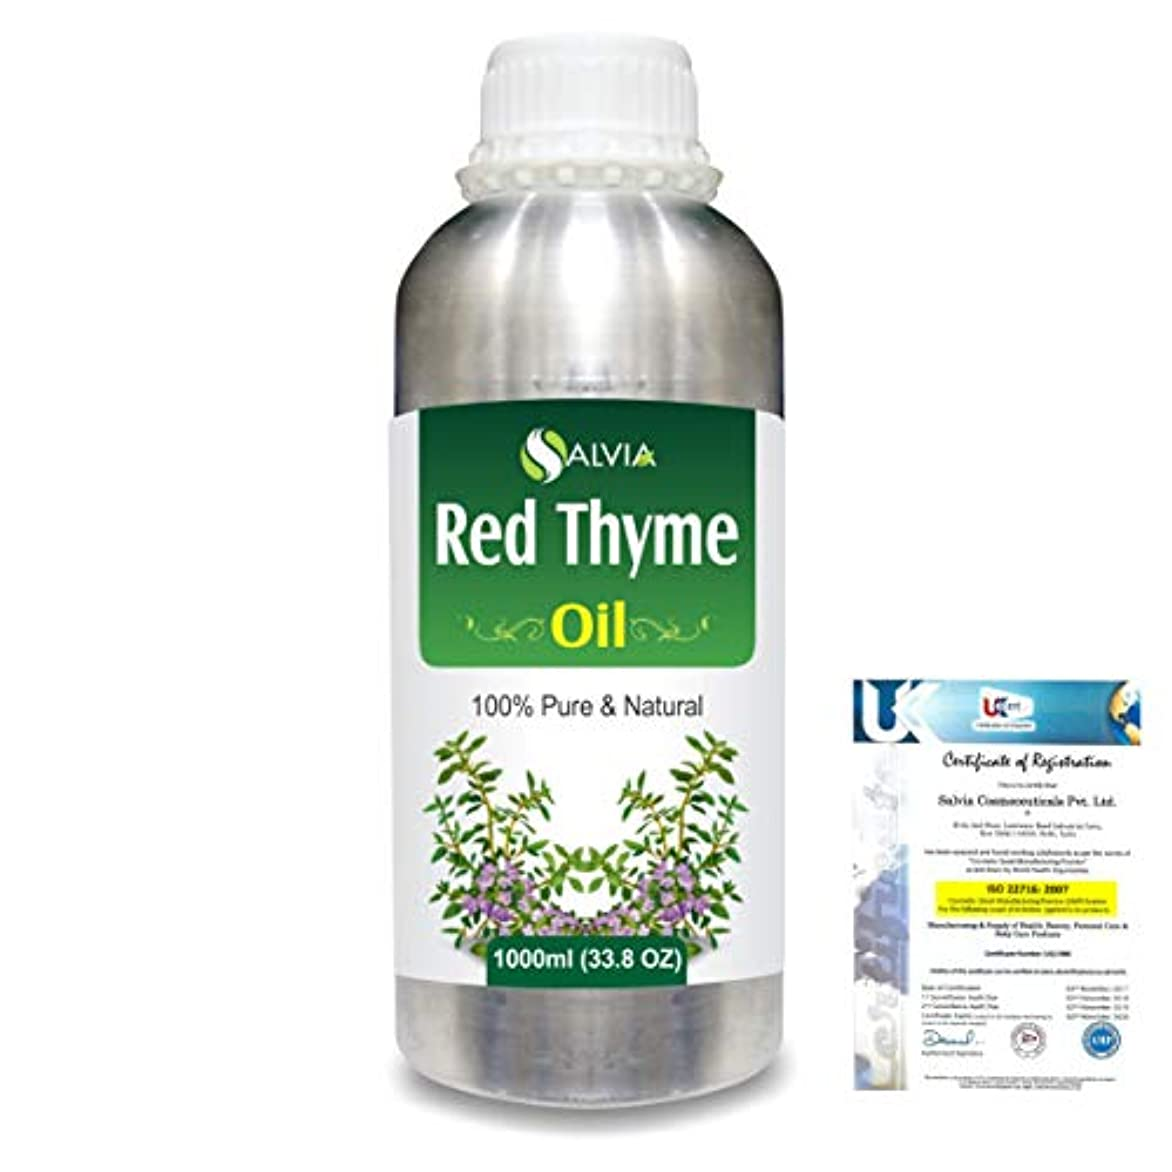 Red Thyme (Thymus Vulgaris) 100% Pure Natural Oil 1000ml/33.8fl.oz.